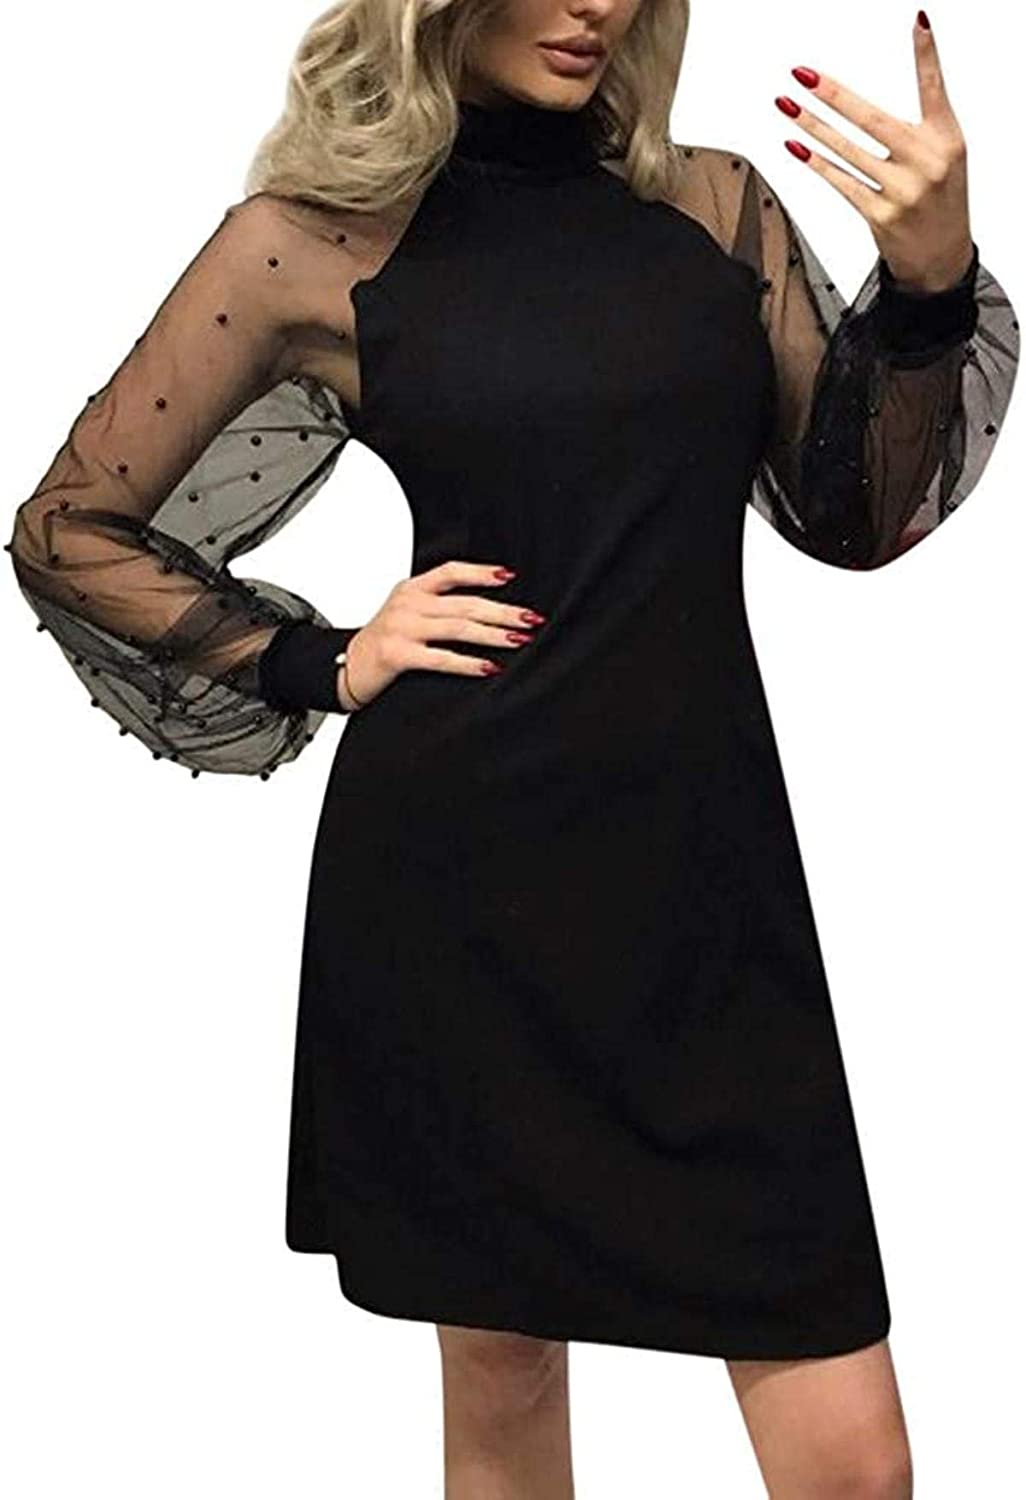 MENHG Women's Sexy Mini Dresses Solid Color Mesh Long Sleeve Pitchwork Slim Dress Ladies Fashion Empire Evening Party Dress